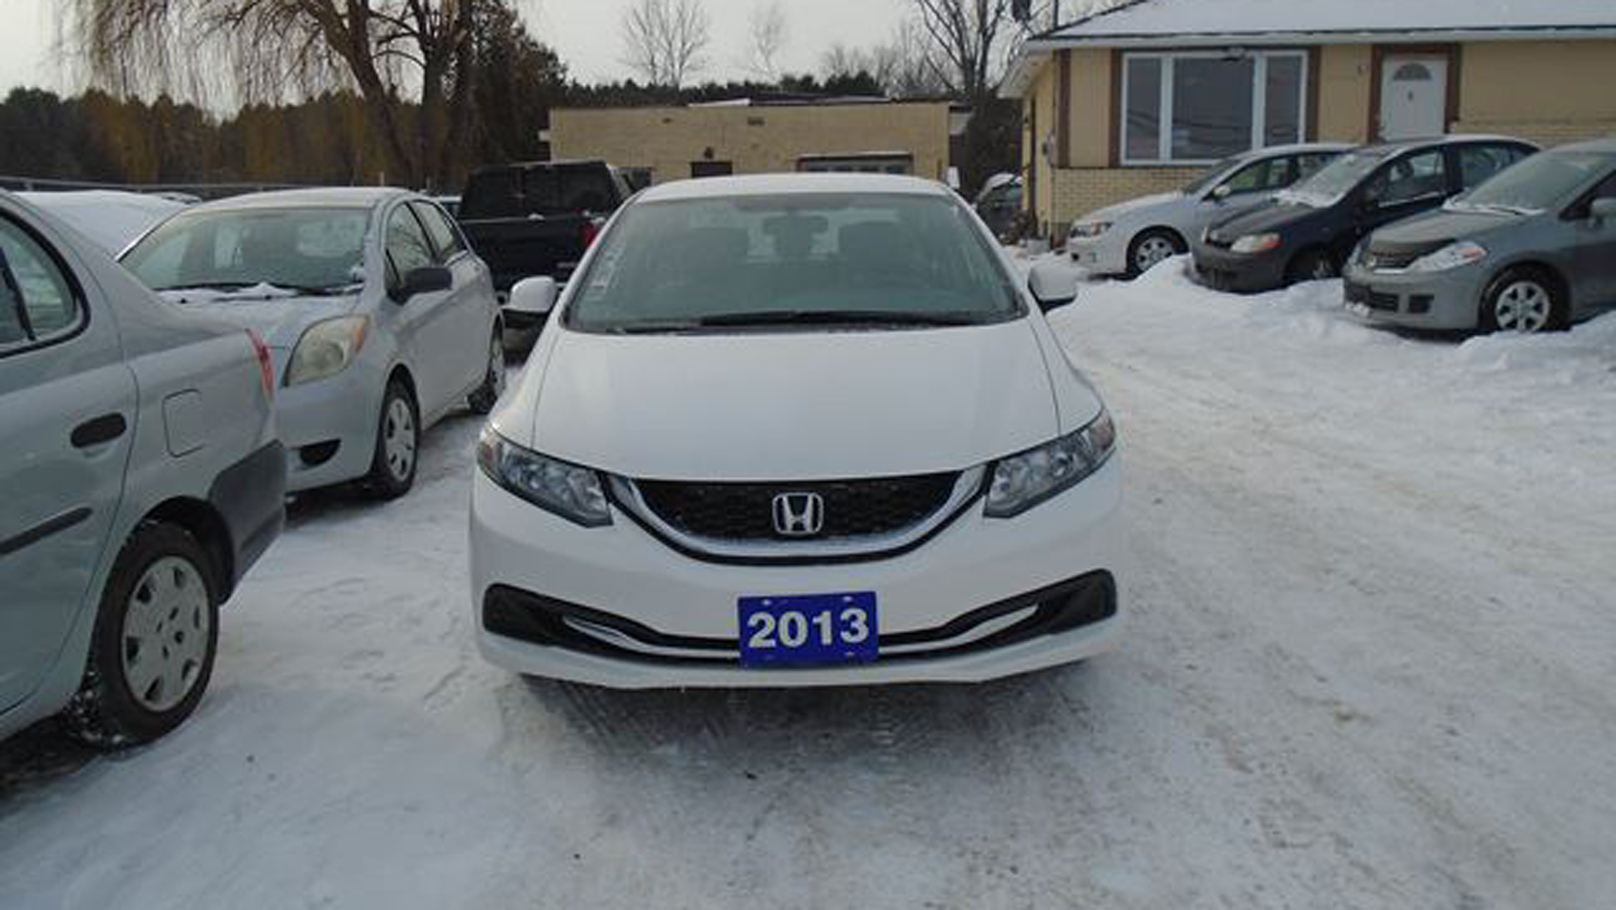 2013 Honda civic used car under $10K